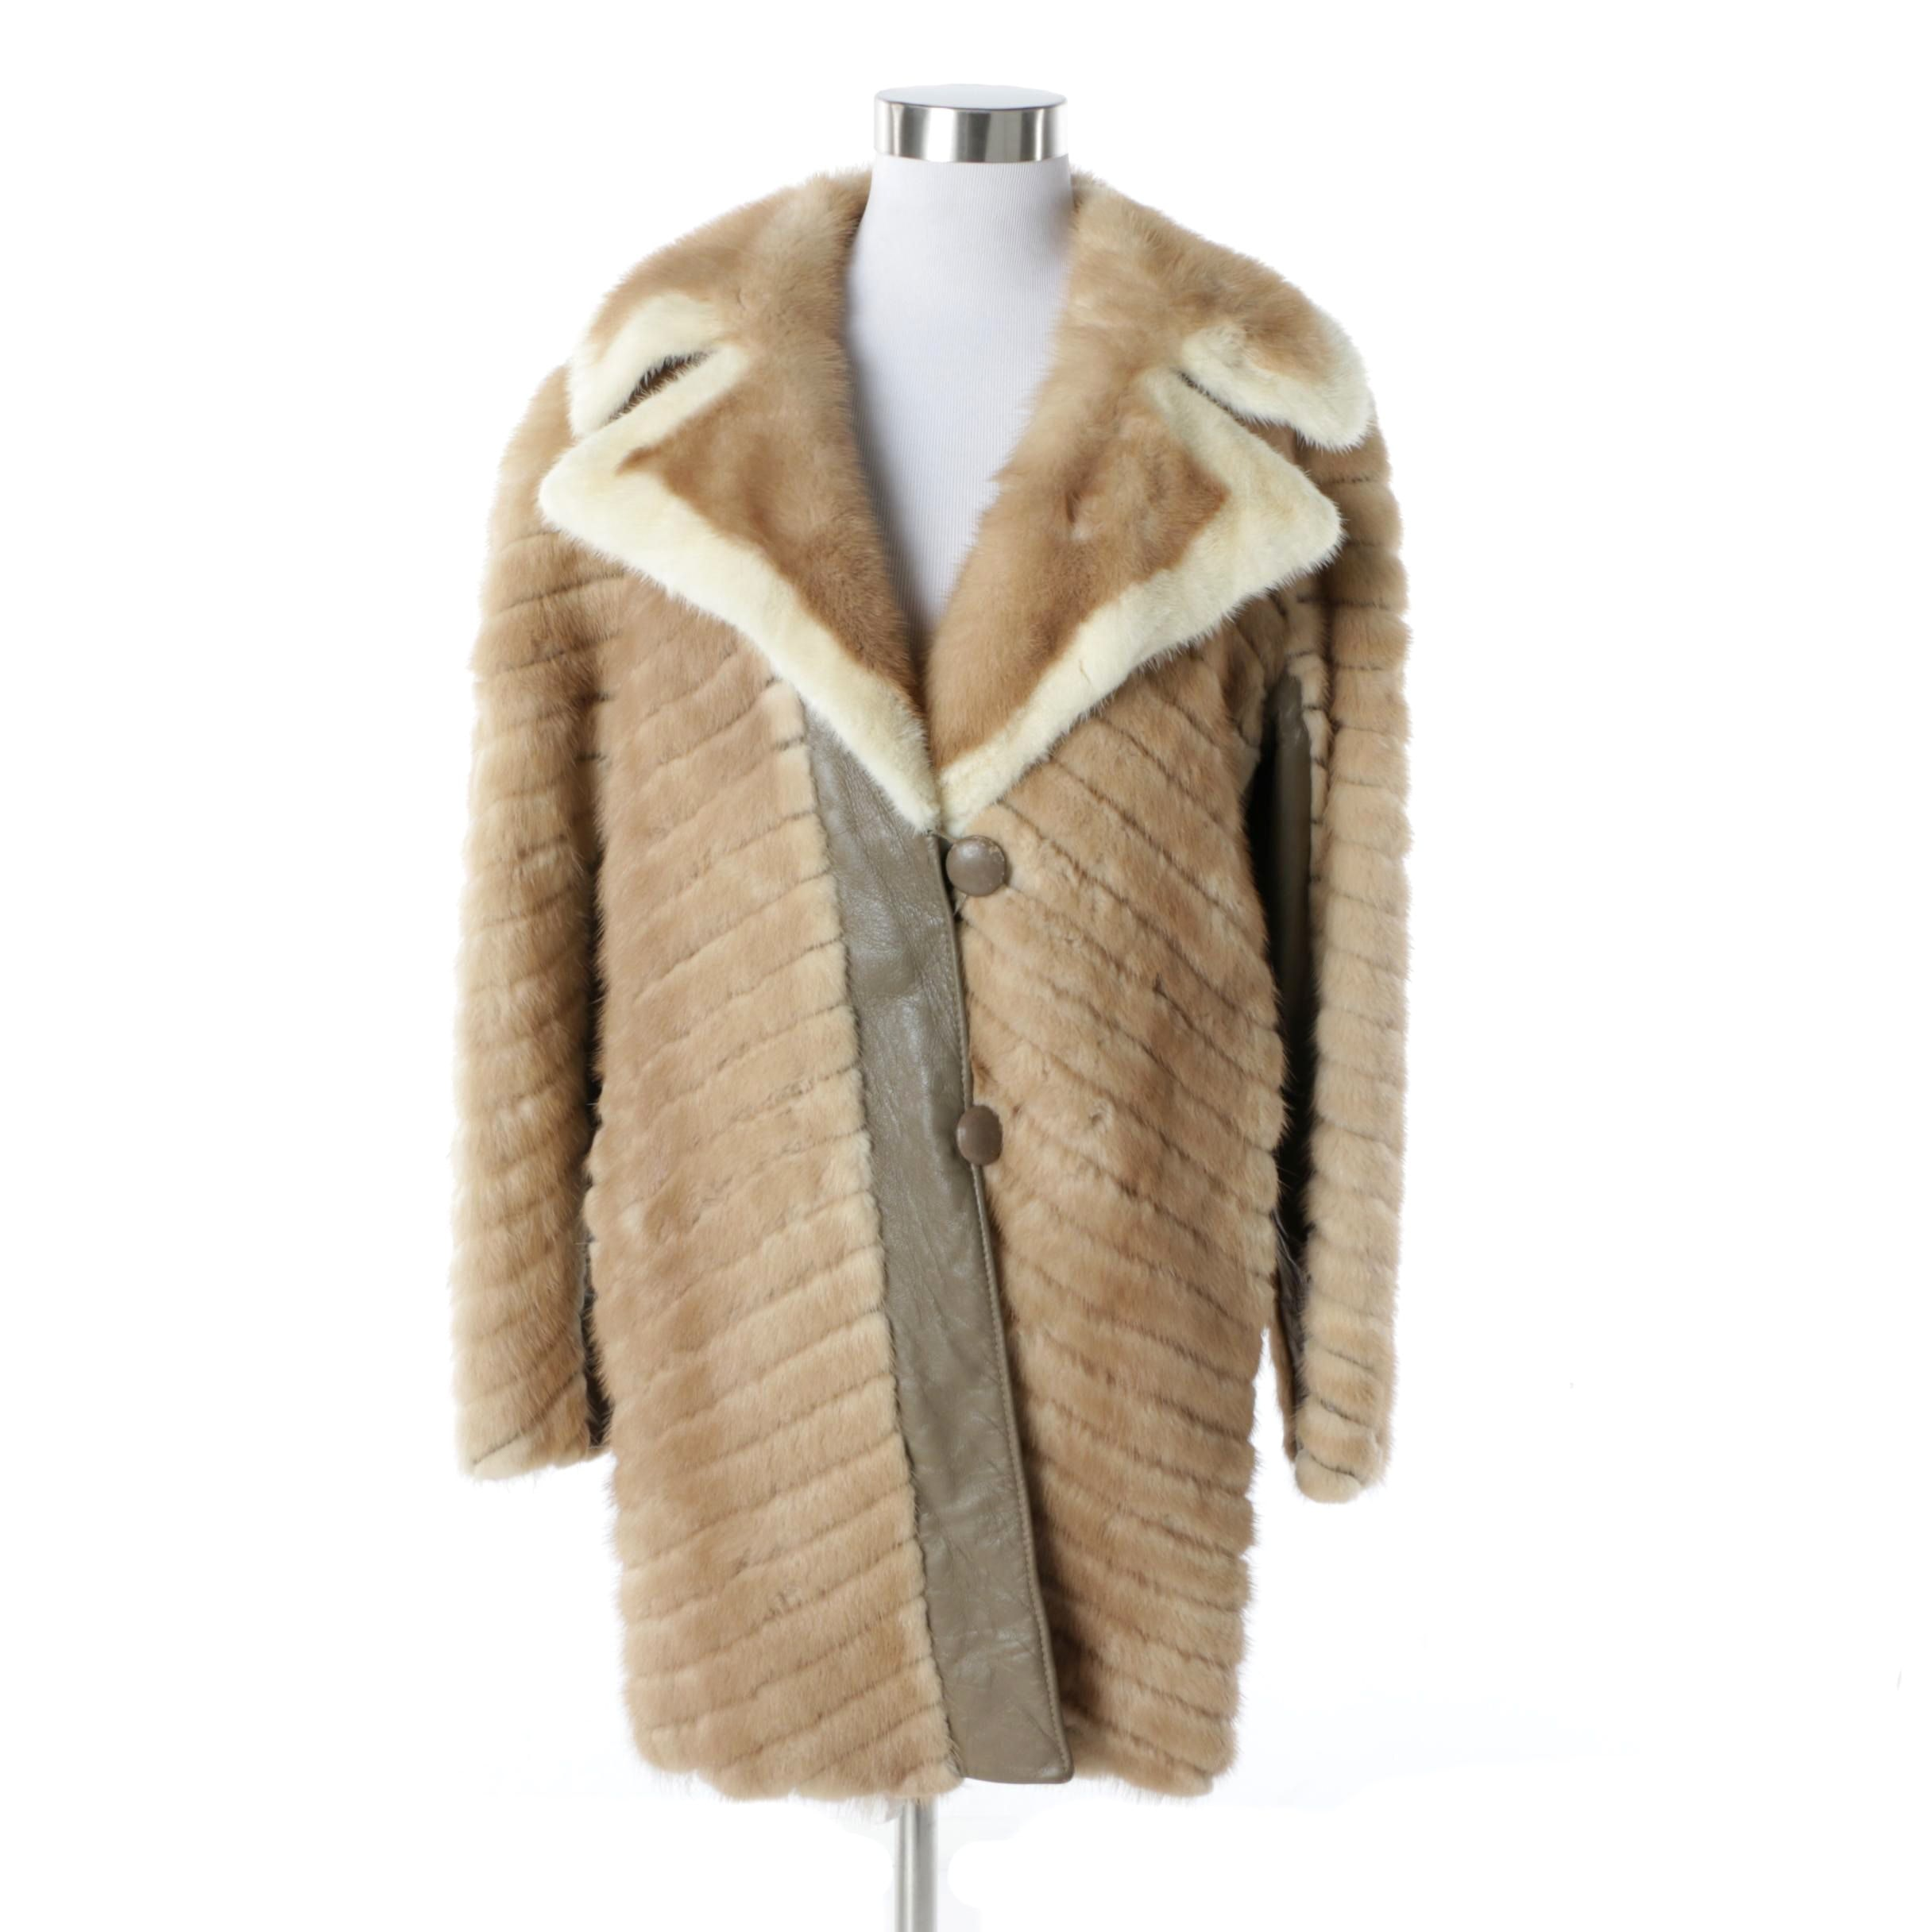 Women's Vintage Mink Fur and Leather Coat